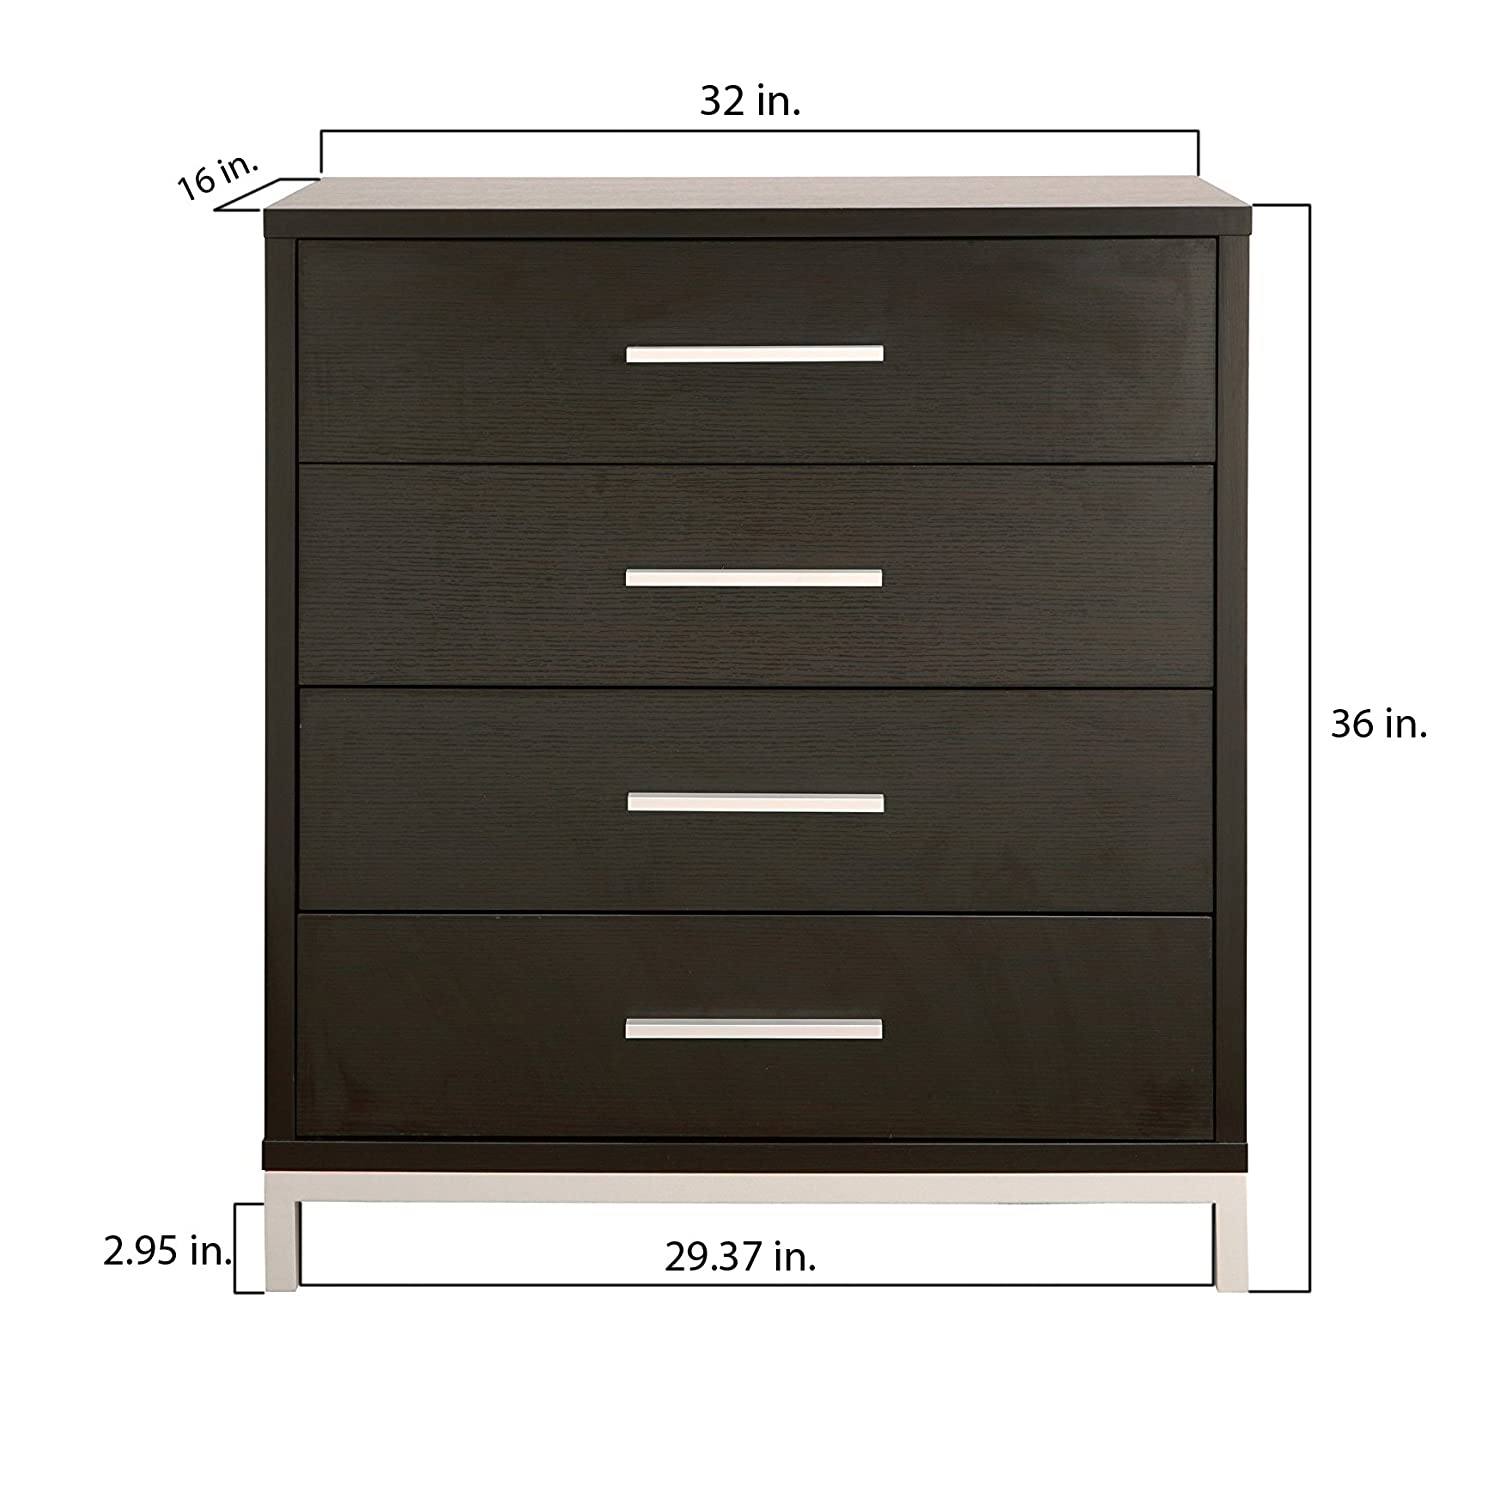 night dresser solid nightstands hemnes for two nightstand stand drawers iron with drawer wood bedside brown cheap white tables vintage maple table chest ikea bedroom cream black